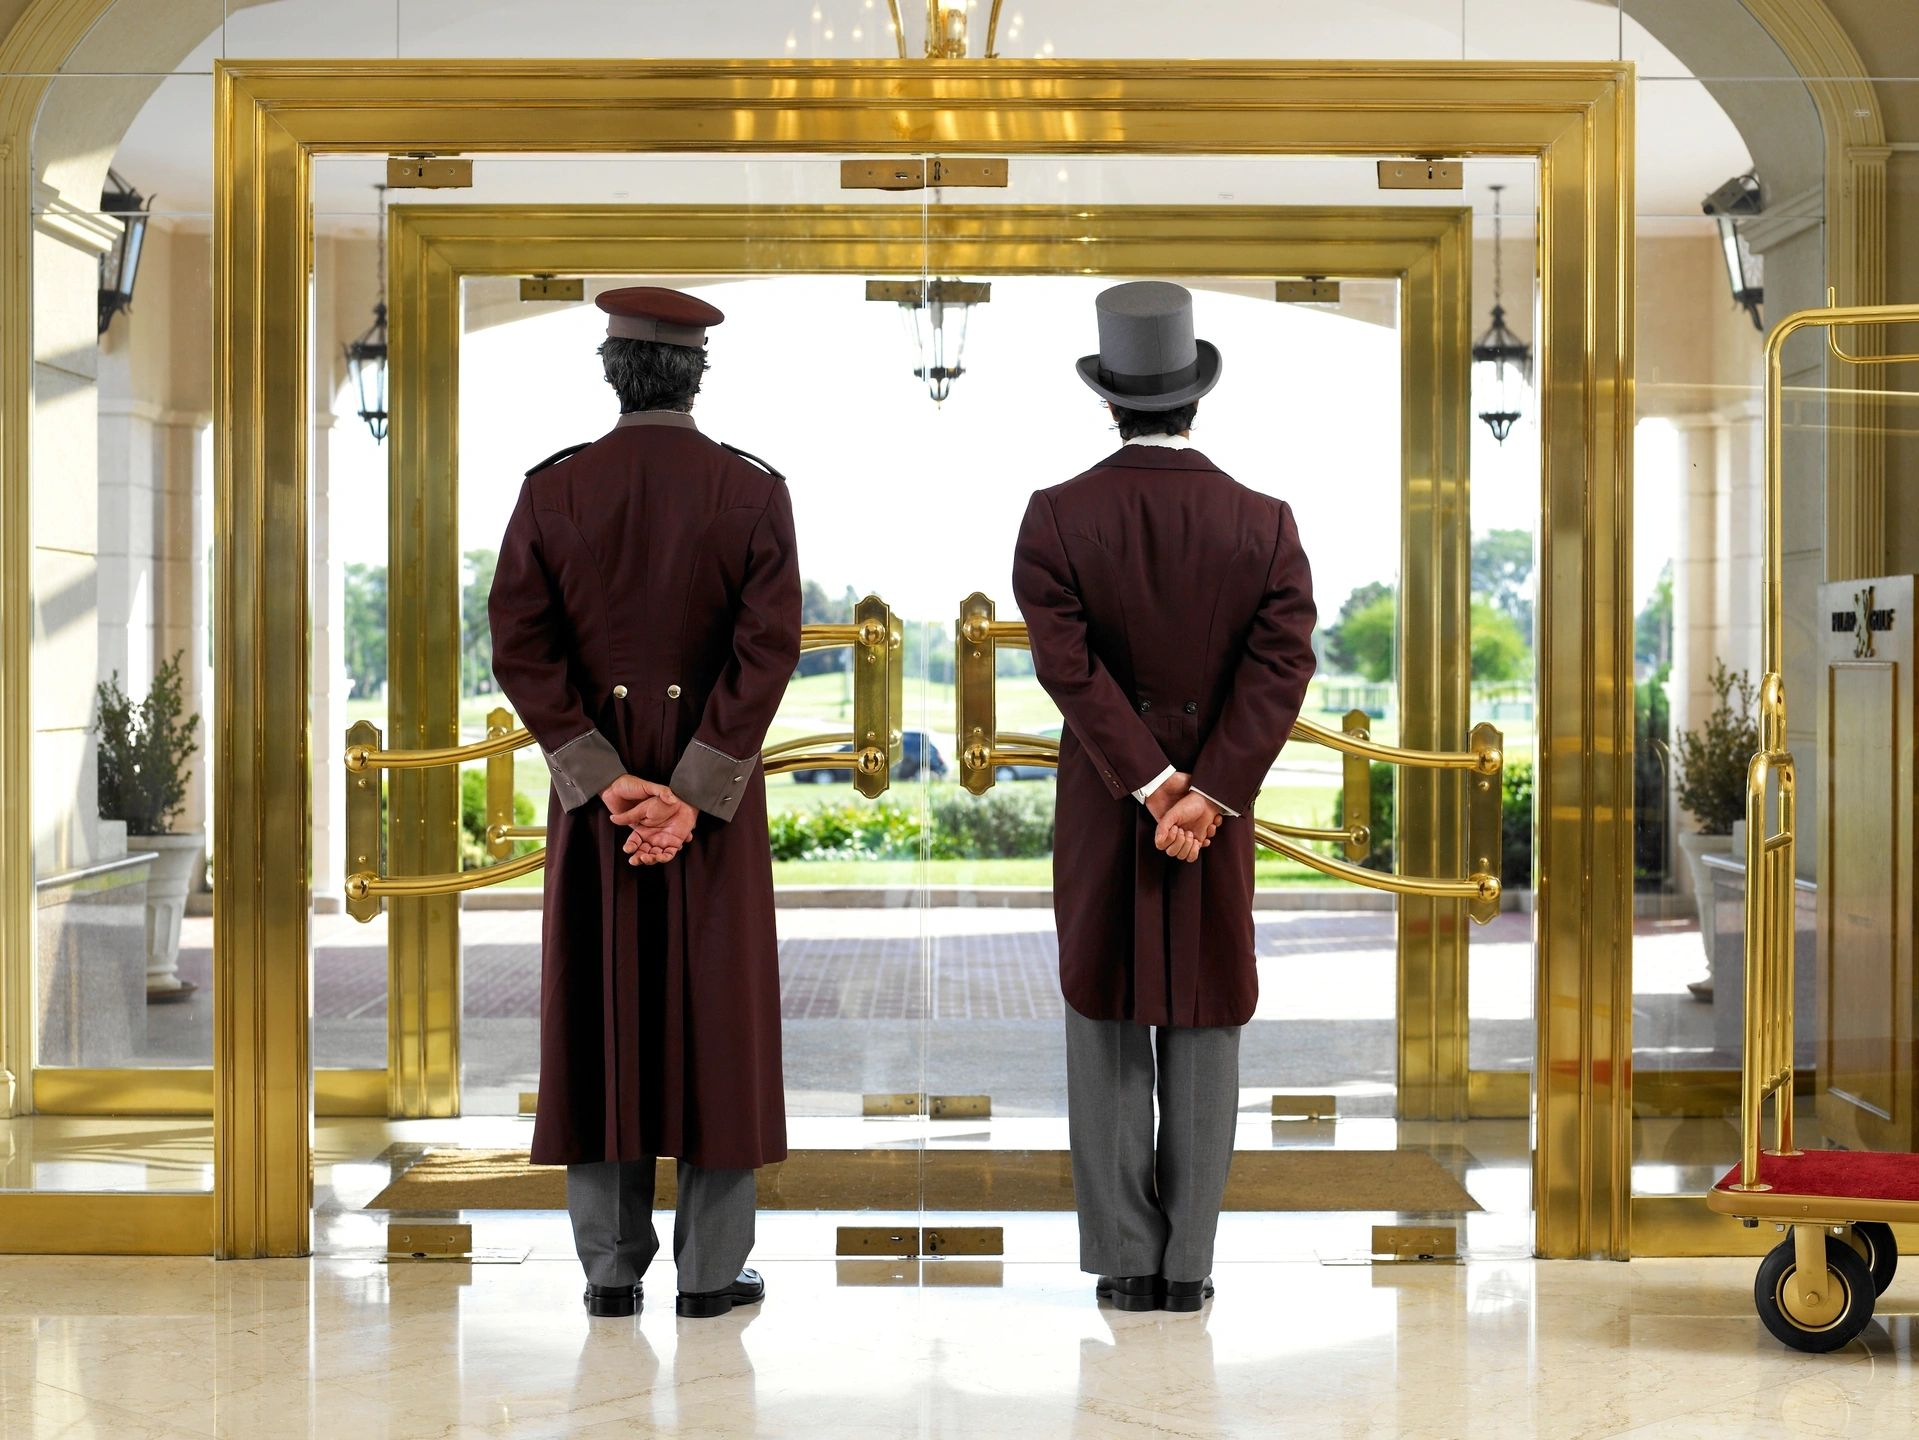 Outsourcing Hotel Operations: Advantages and Disadvantages